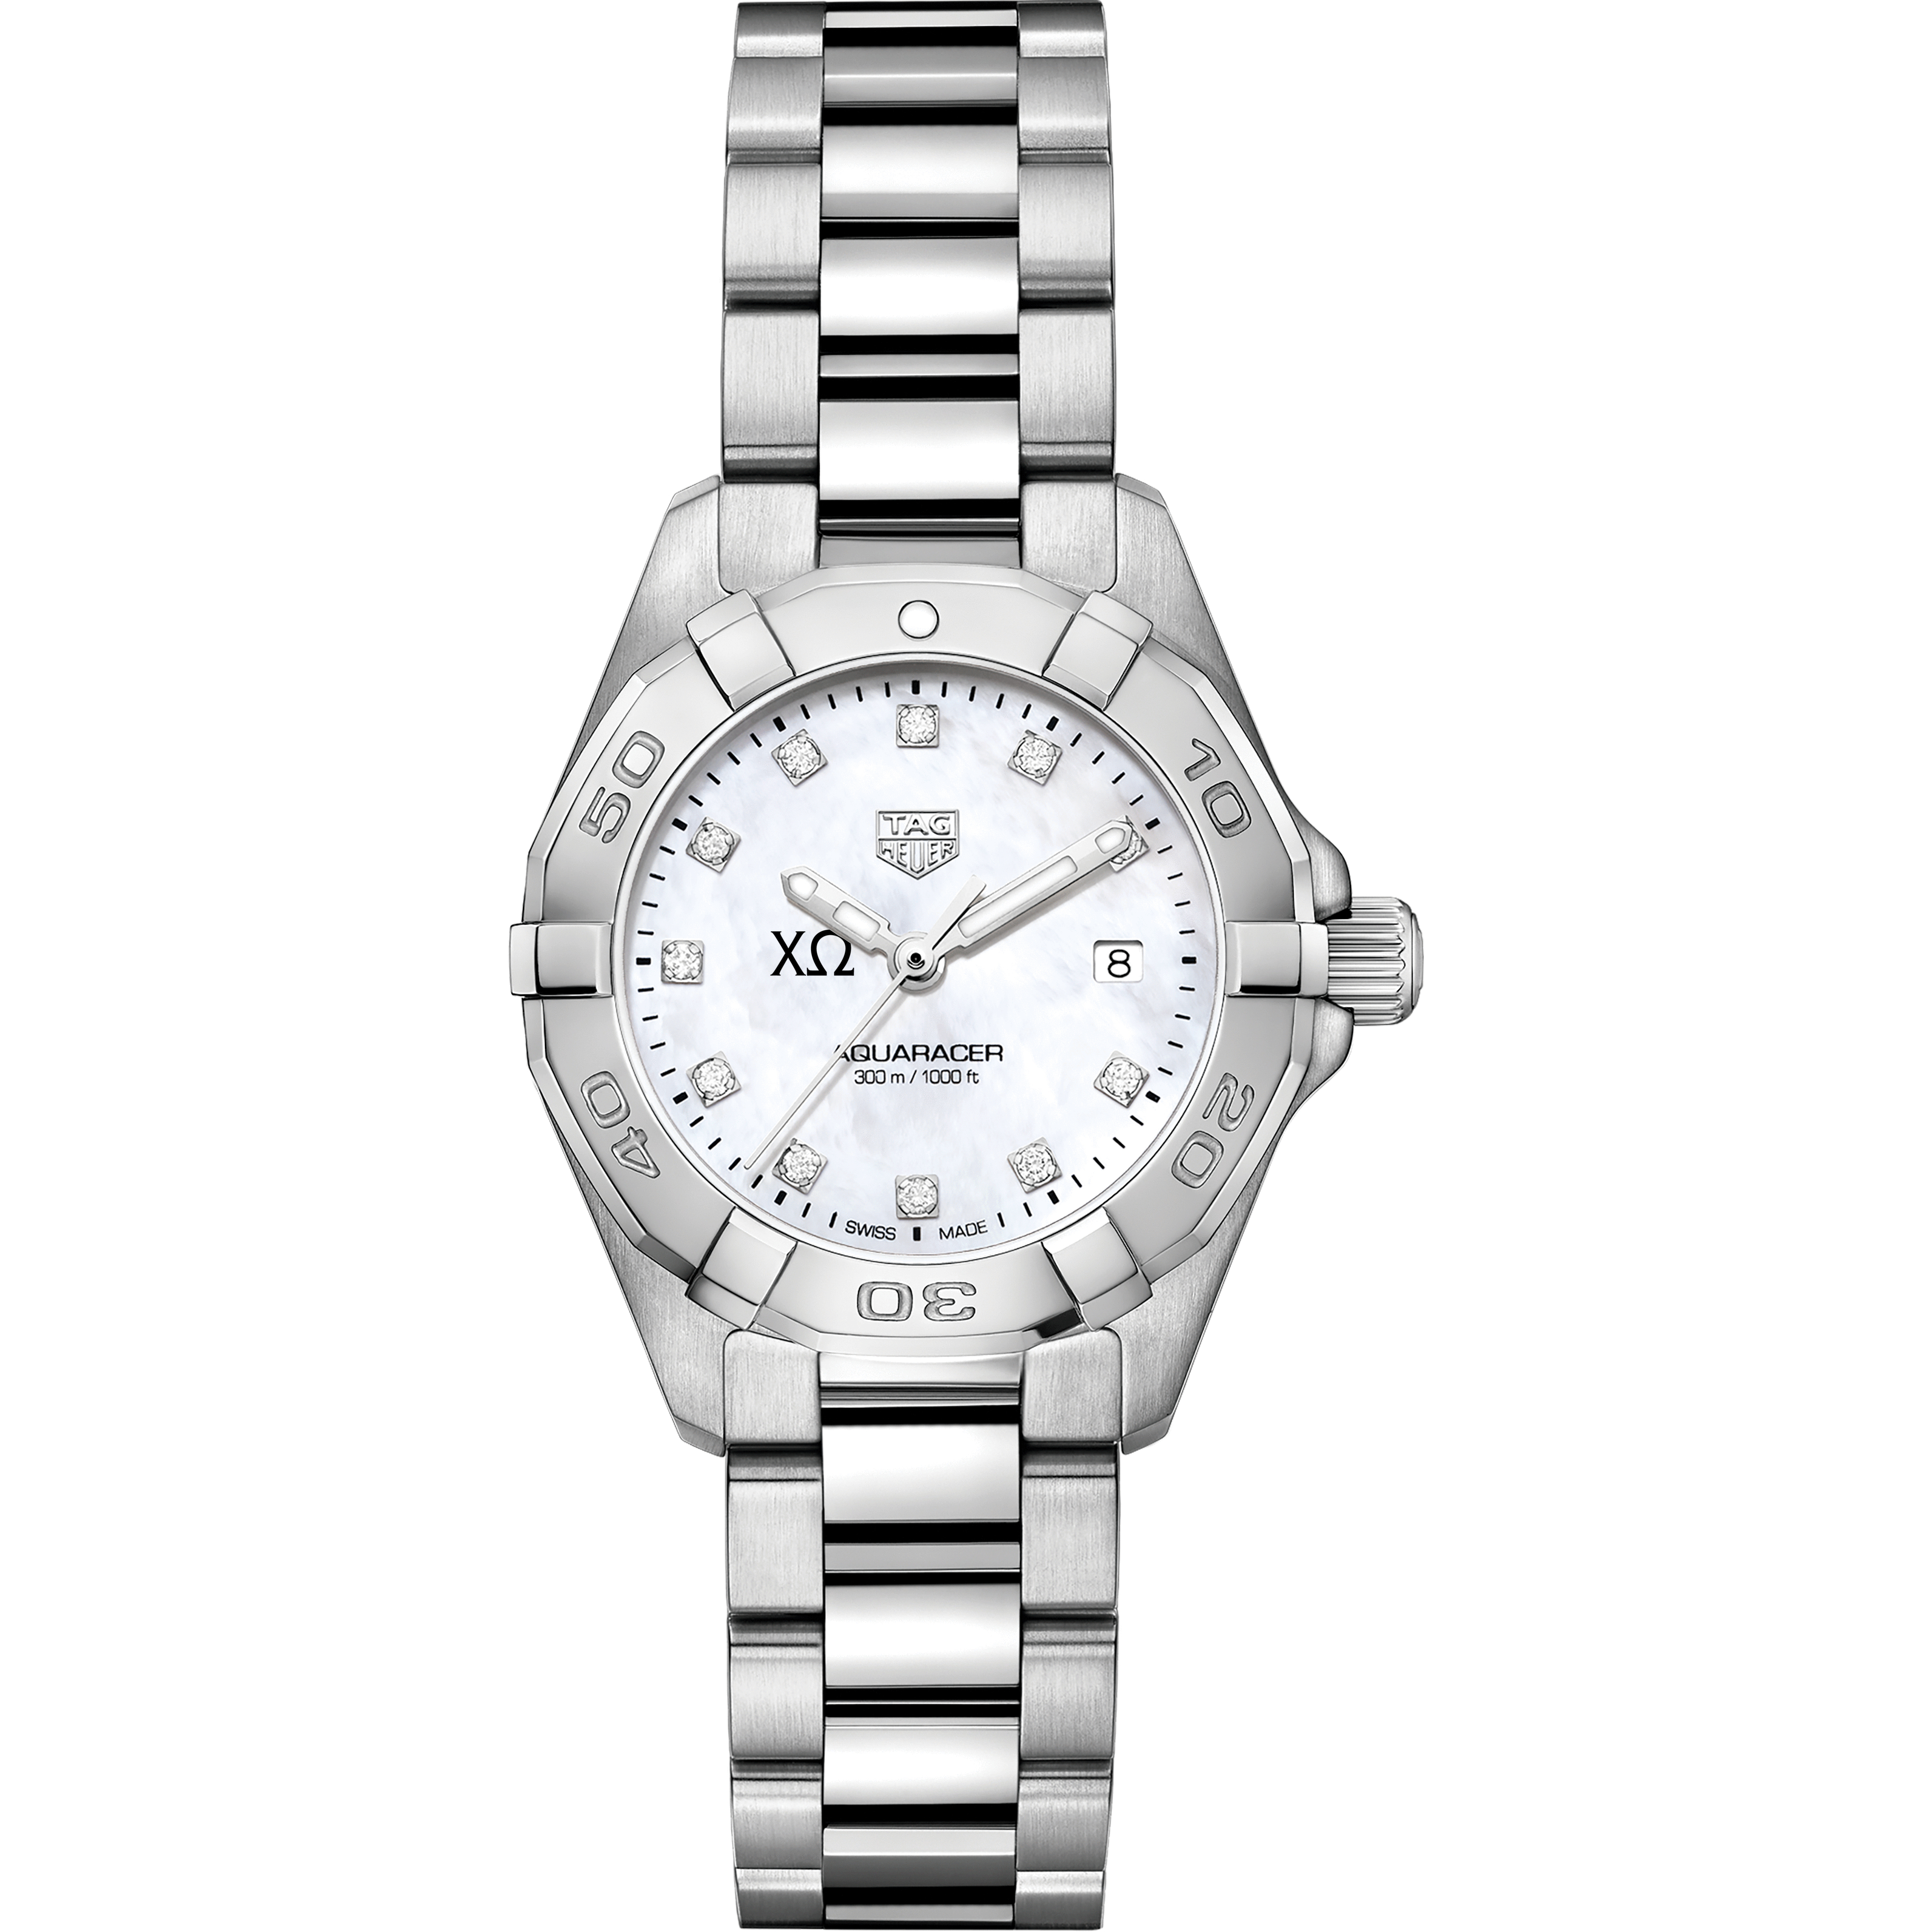 Chi Omega W's TAG Heuer Steel Aquaracer w MOP Dia Dial - Image 2